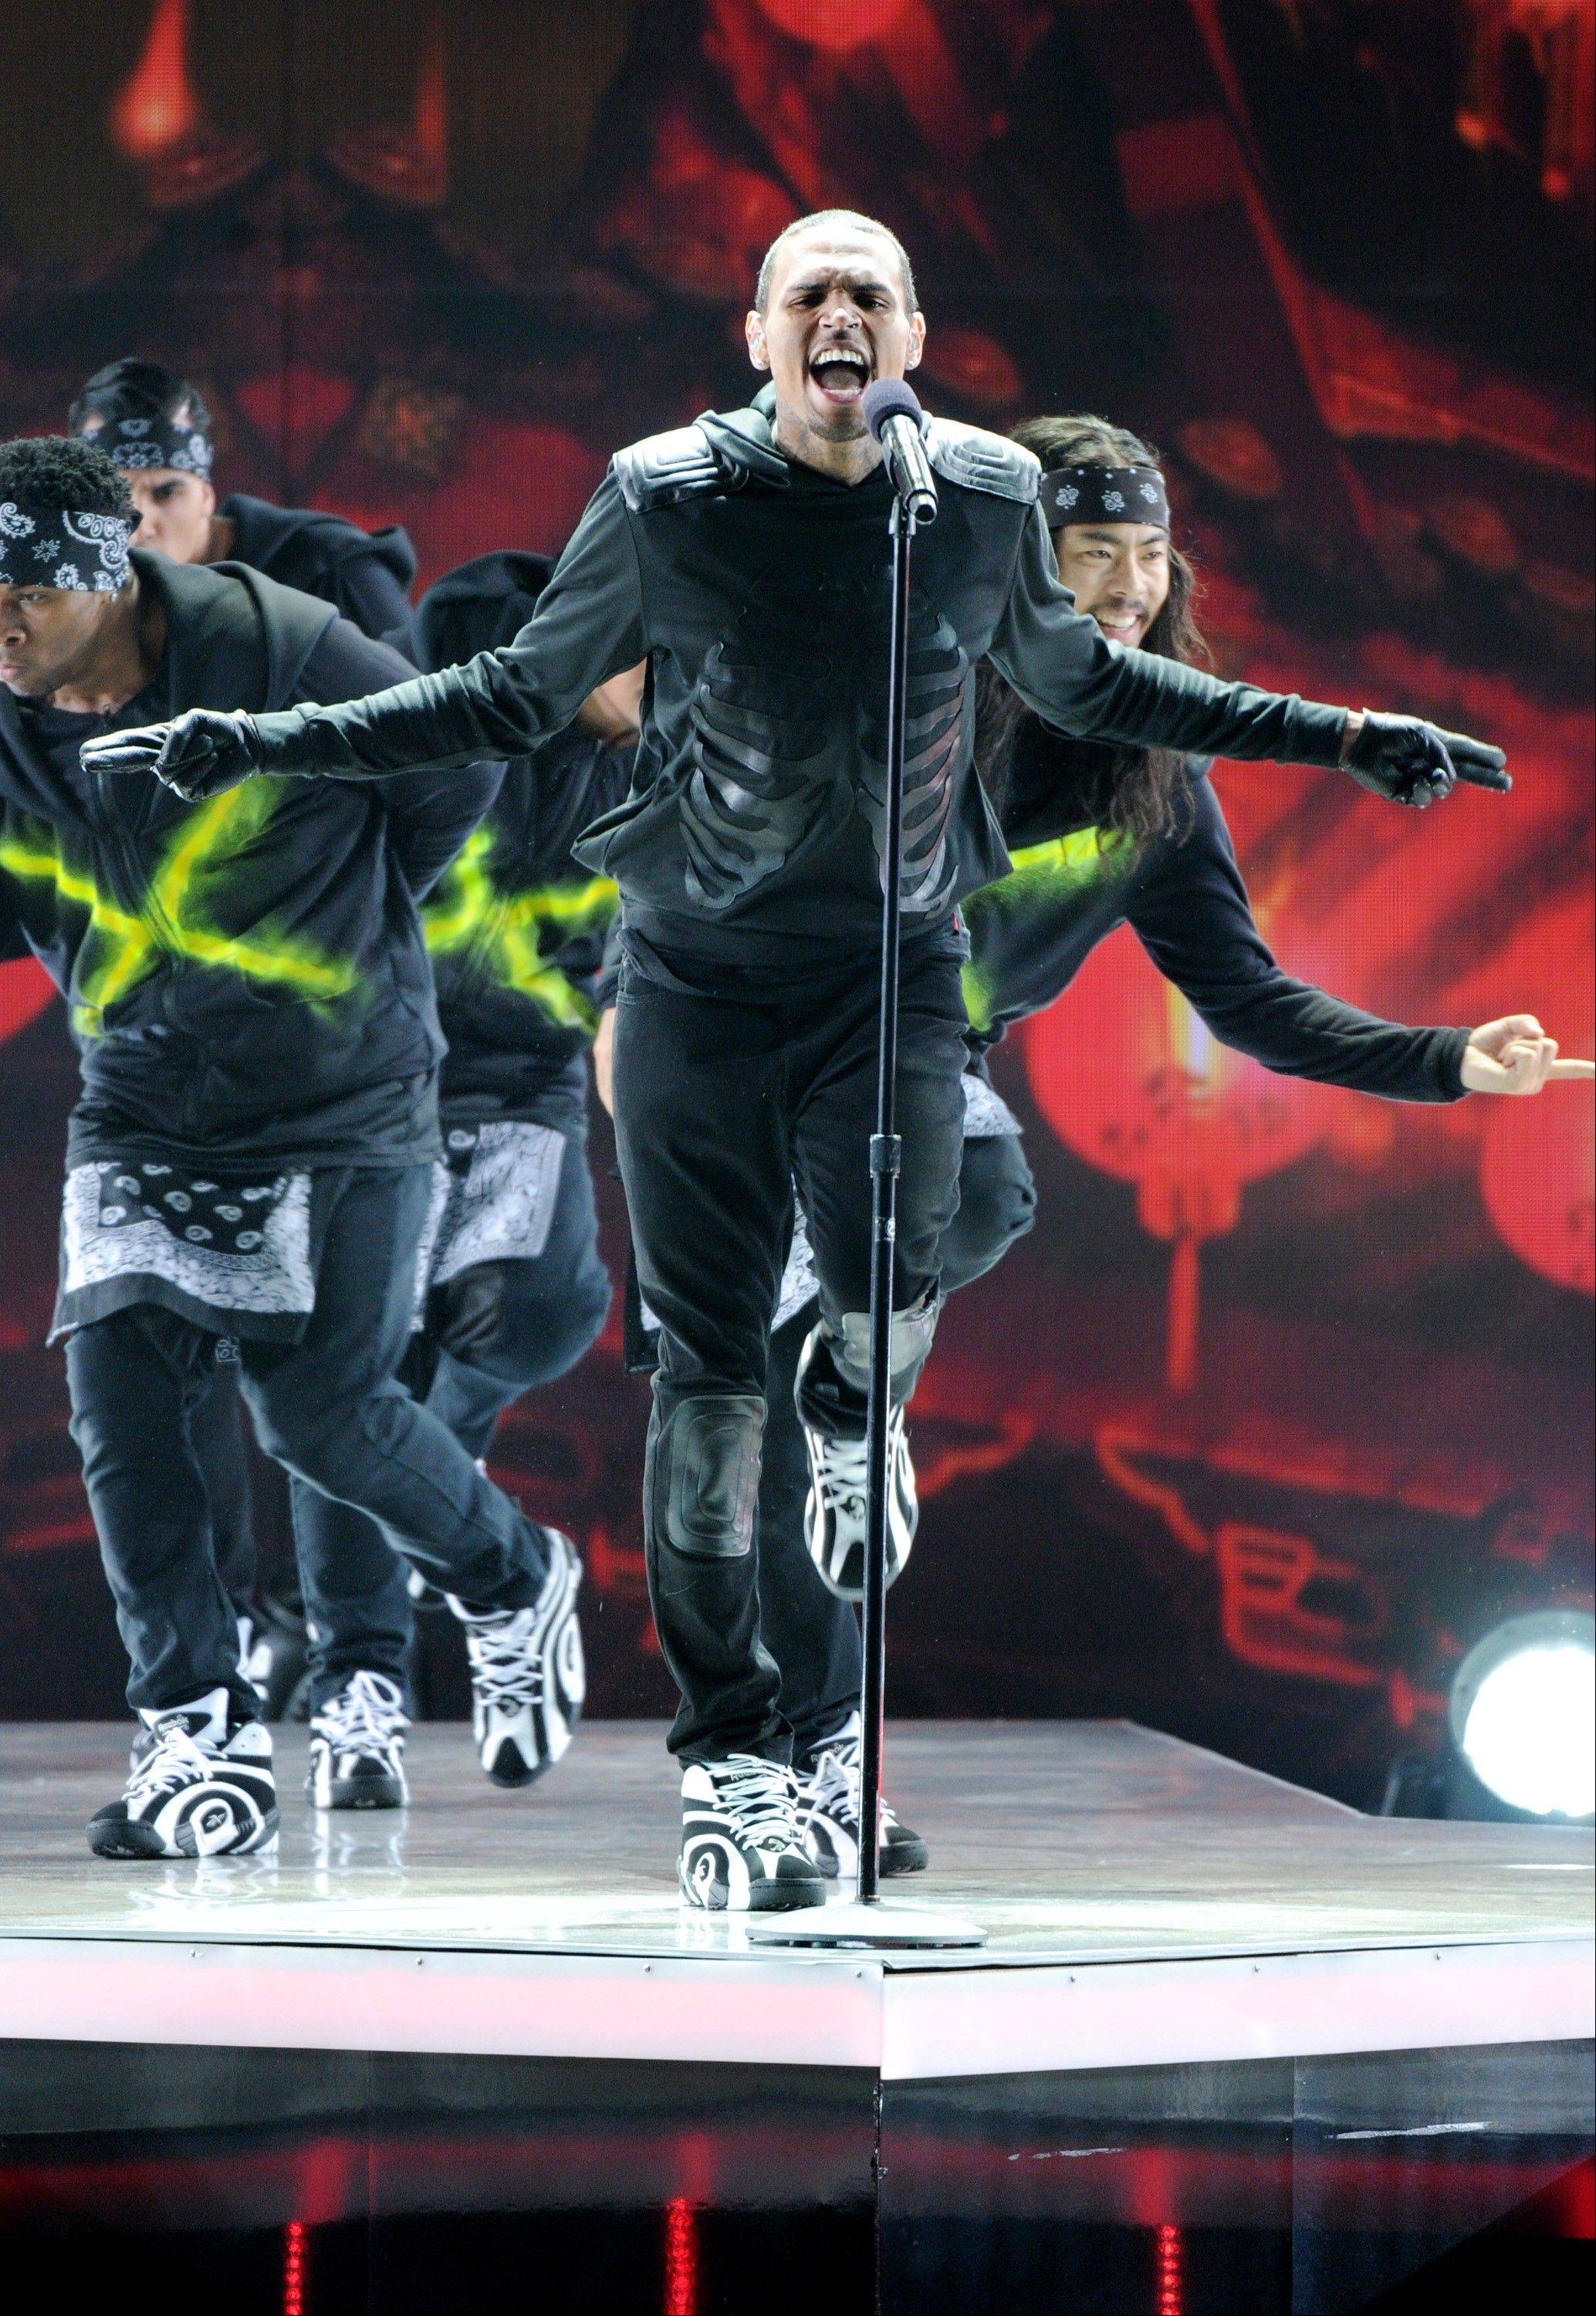 Chris Brown wows the crowd at the BET Awards.